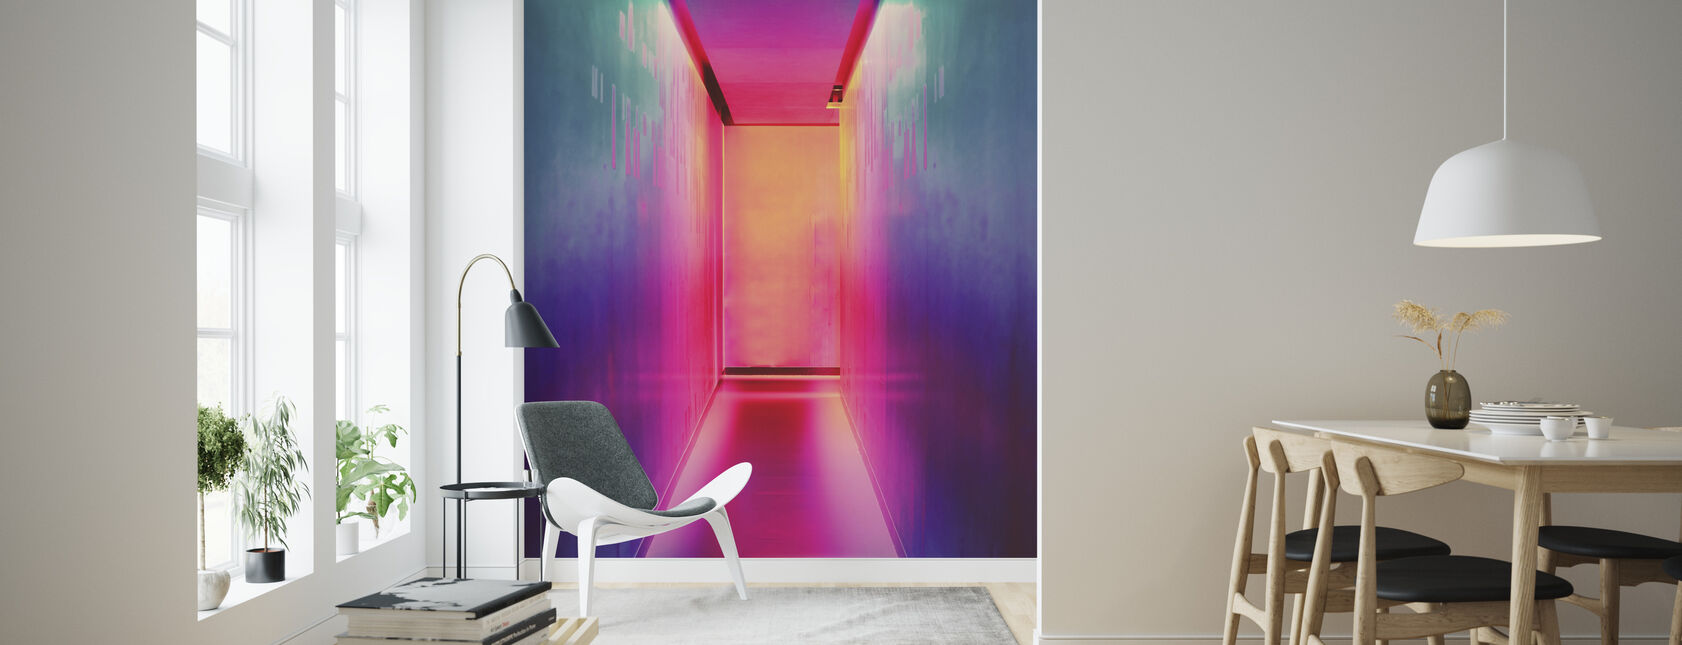 Bright Neon Lights - Wallpaper - Living Room